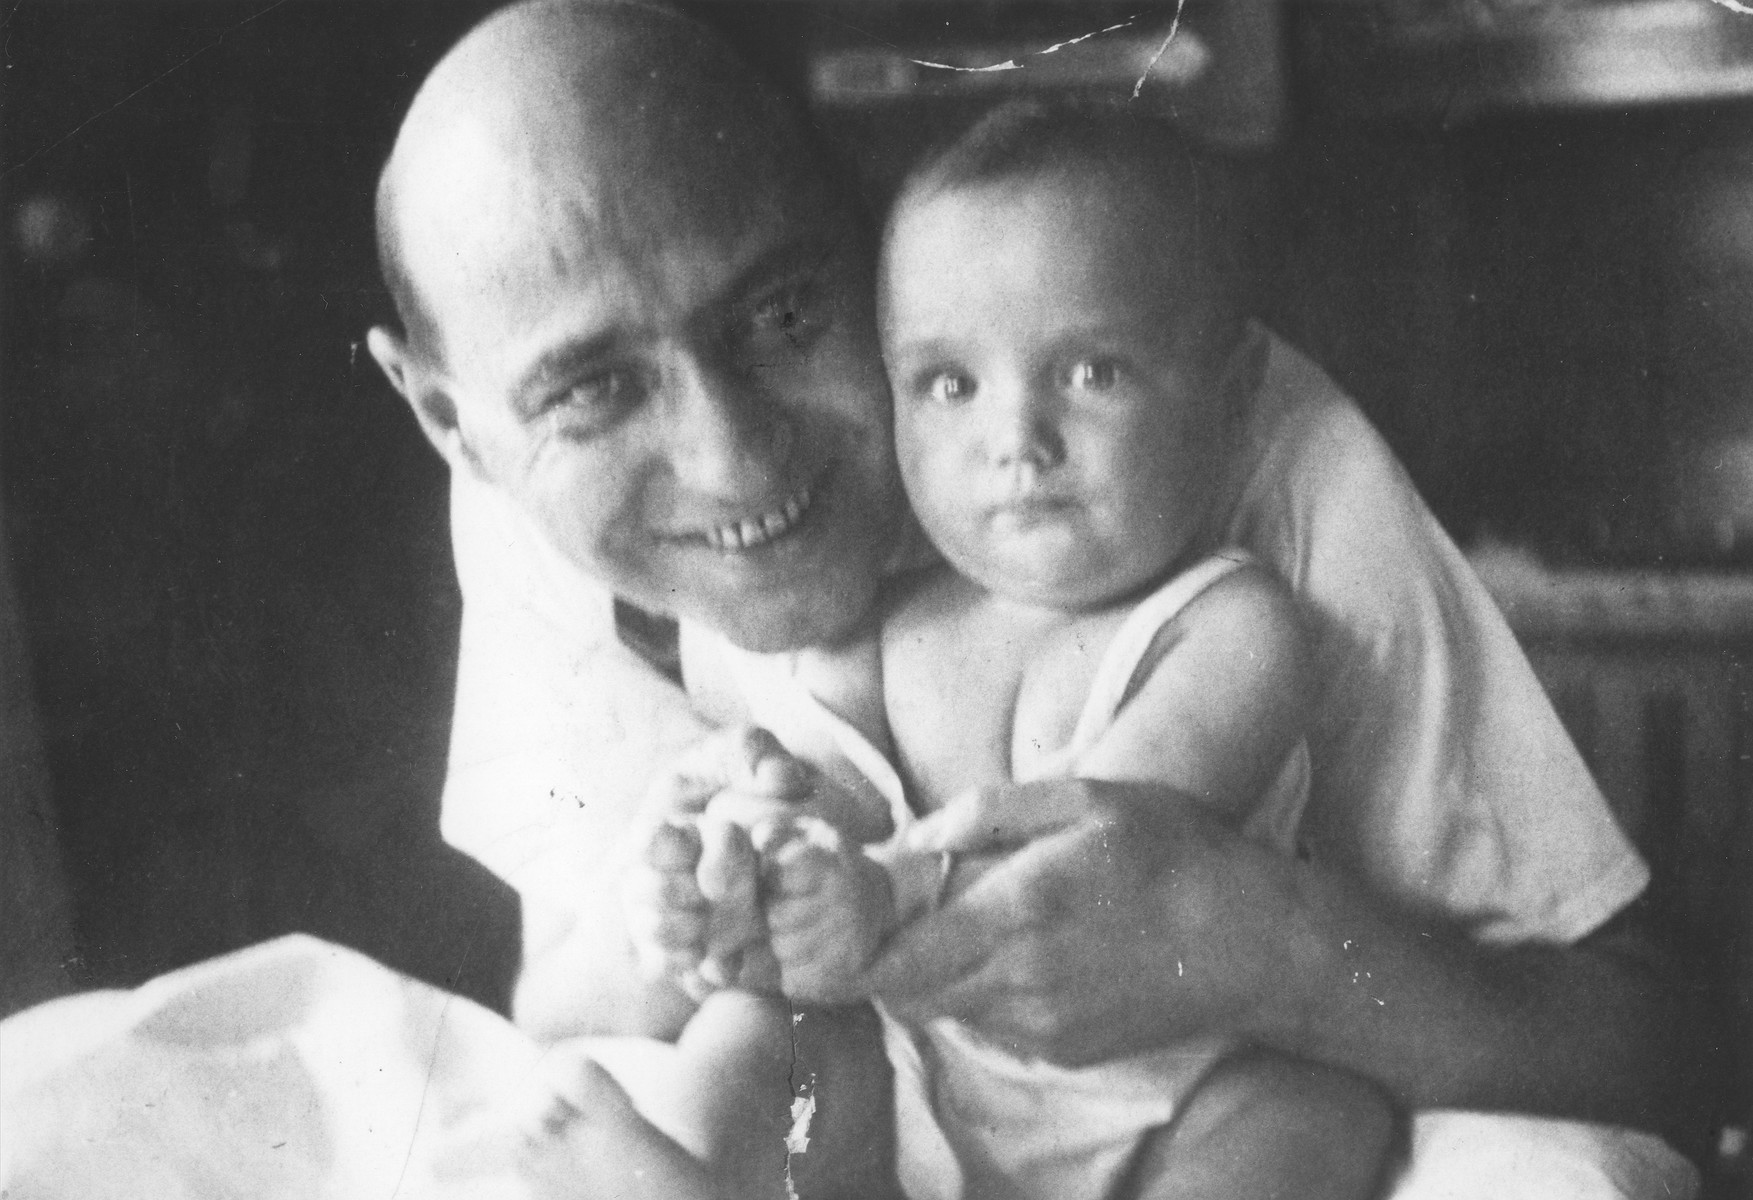 Portrait of a Jewish father holding his infant son.  Pictured are Dr. Brunno Deutsch and his son Bedrich.